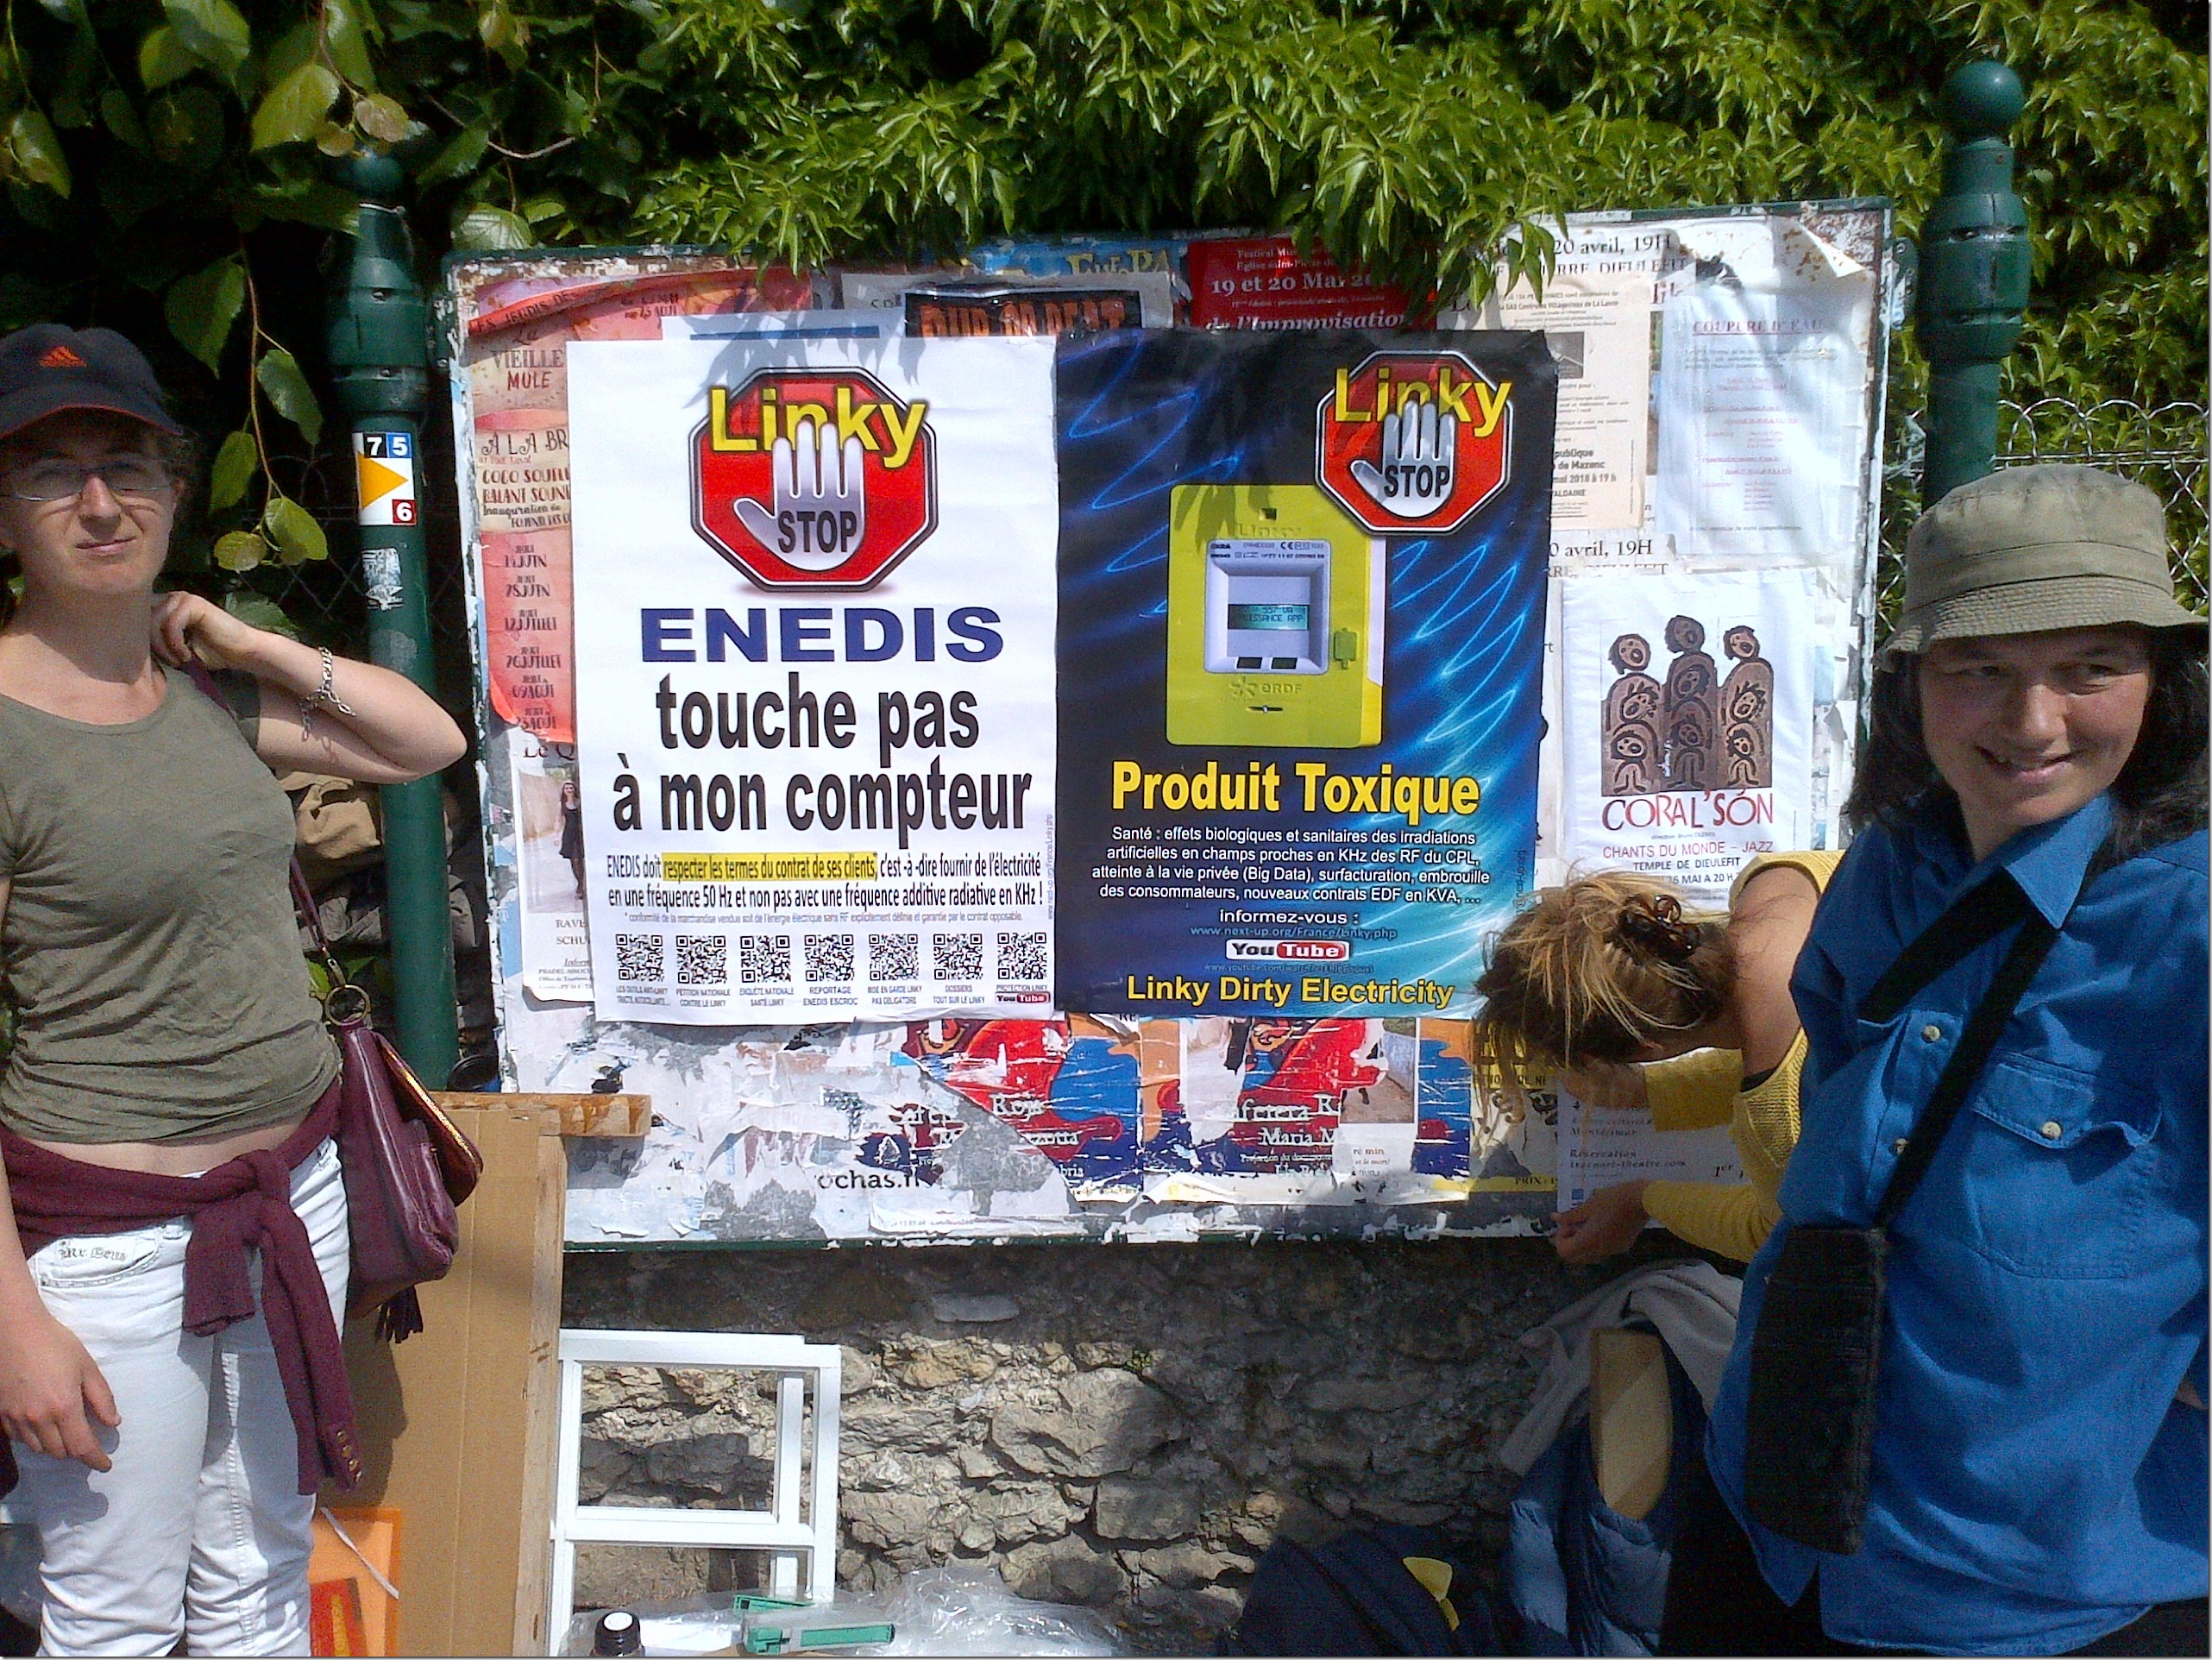 2018 May 17 Dieulefit market,   France, campaign against Linky smart meters[5333]